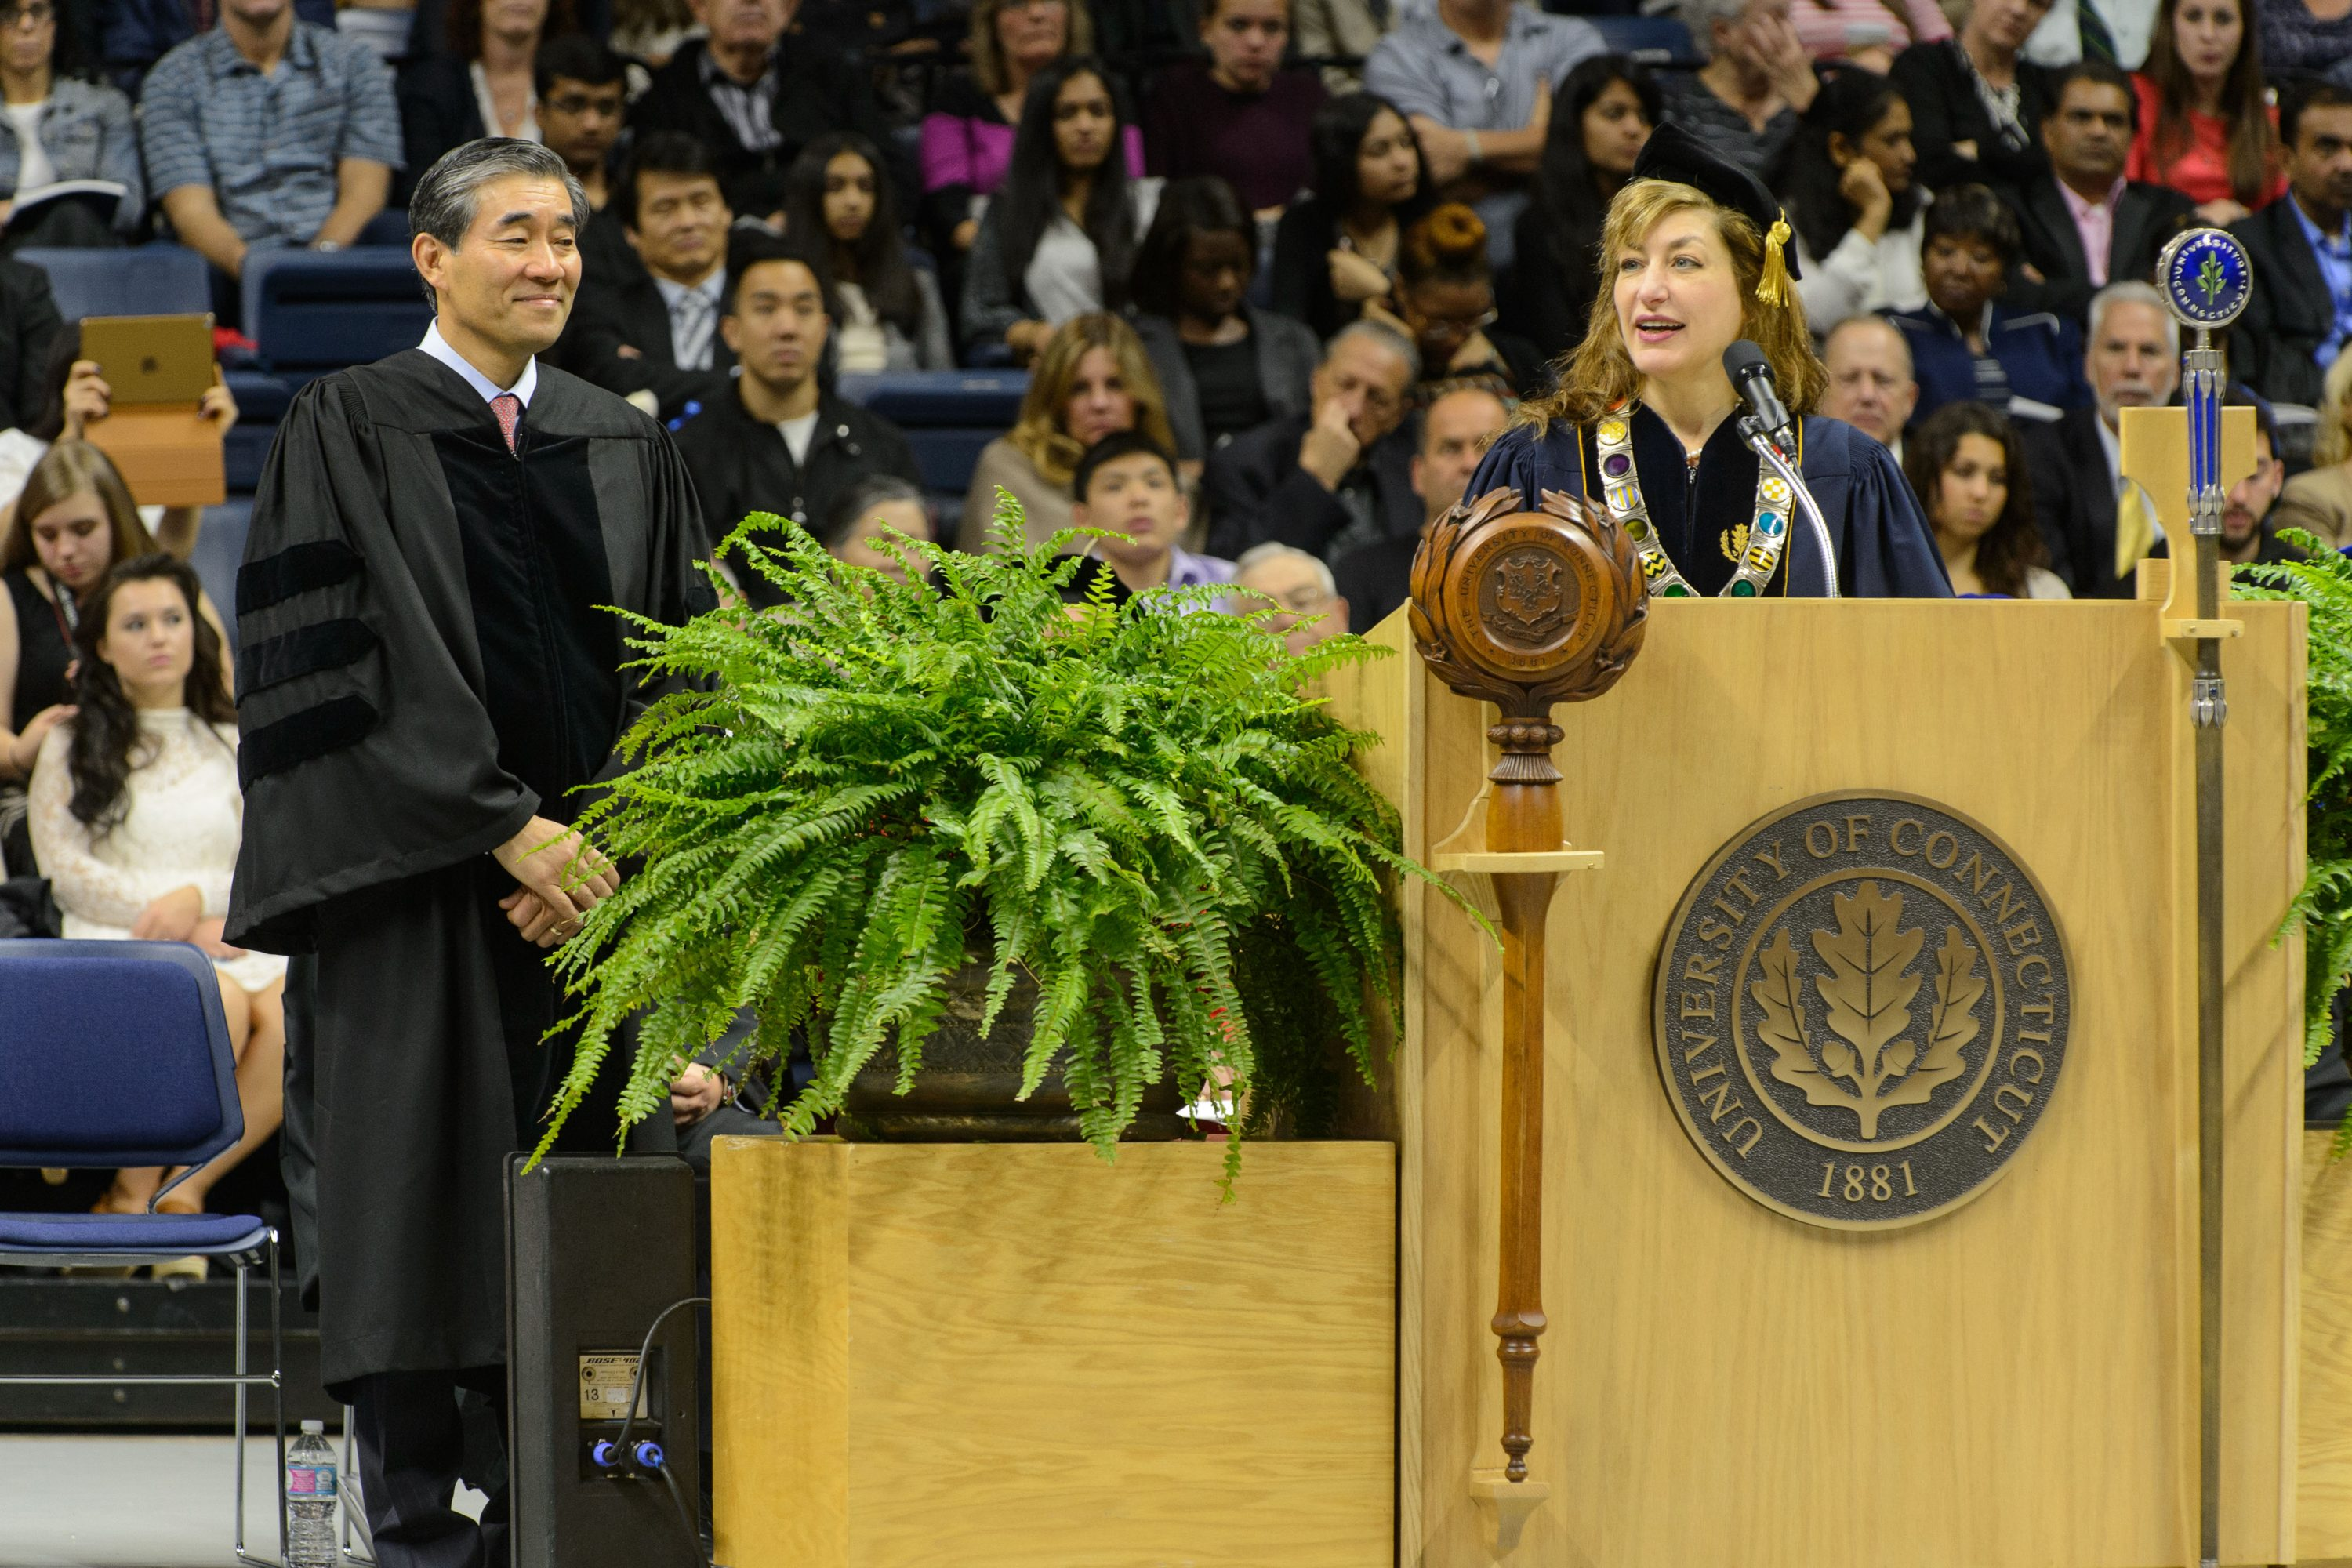 President Susan Herbst reads the citation to award John Kim '87 MBA an honorary degree during the School of Business commencement ceremony at Gampel Pavilion on May 8, 2016. (Peter Morenus/UConn Photo)